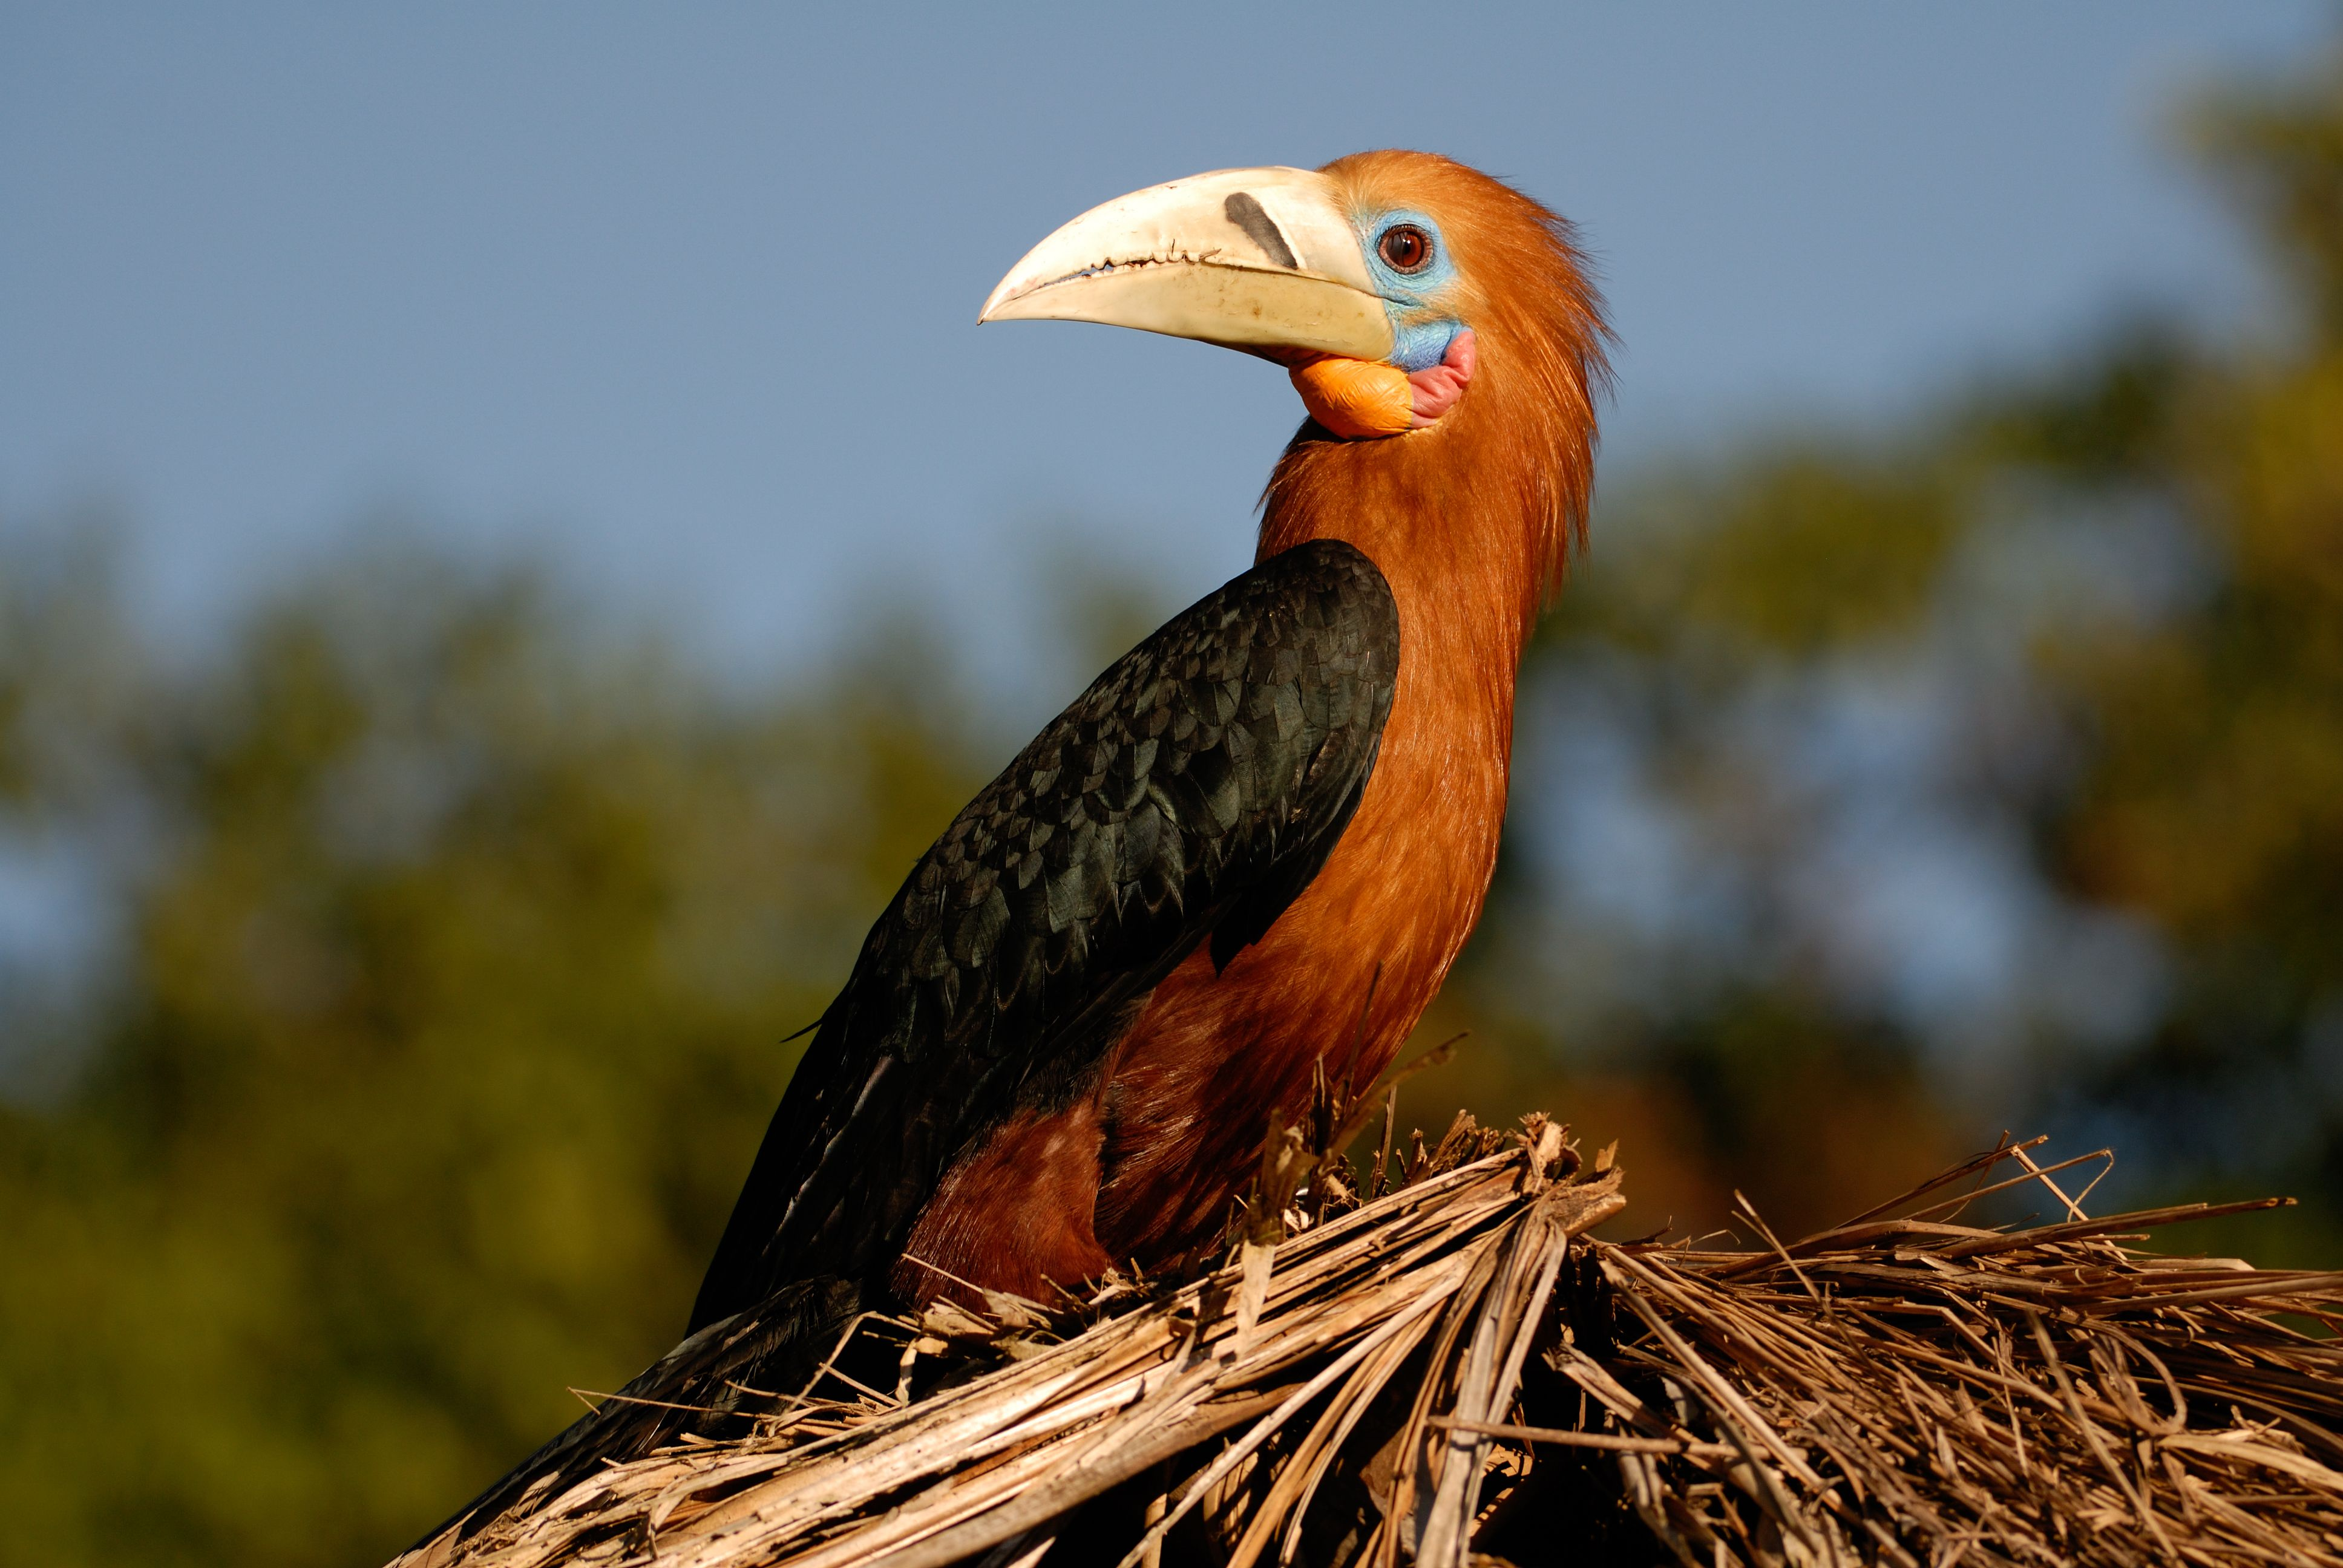 961. Rufousnecked Hornbill (Aceros nipalensis) the